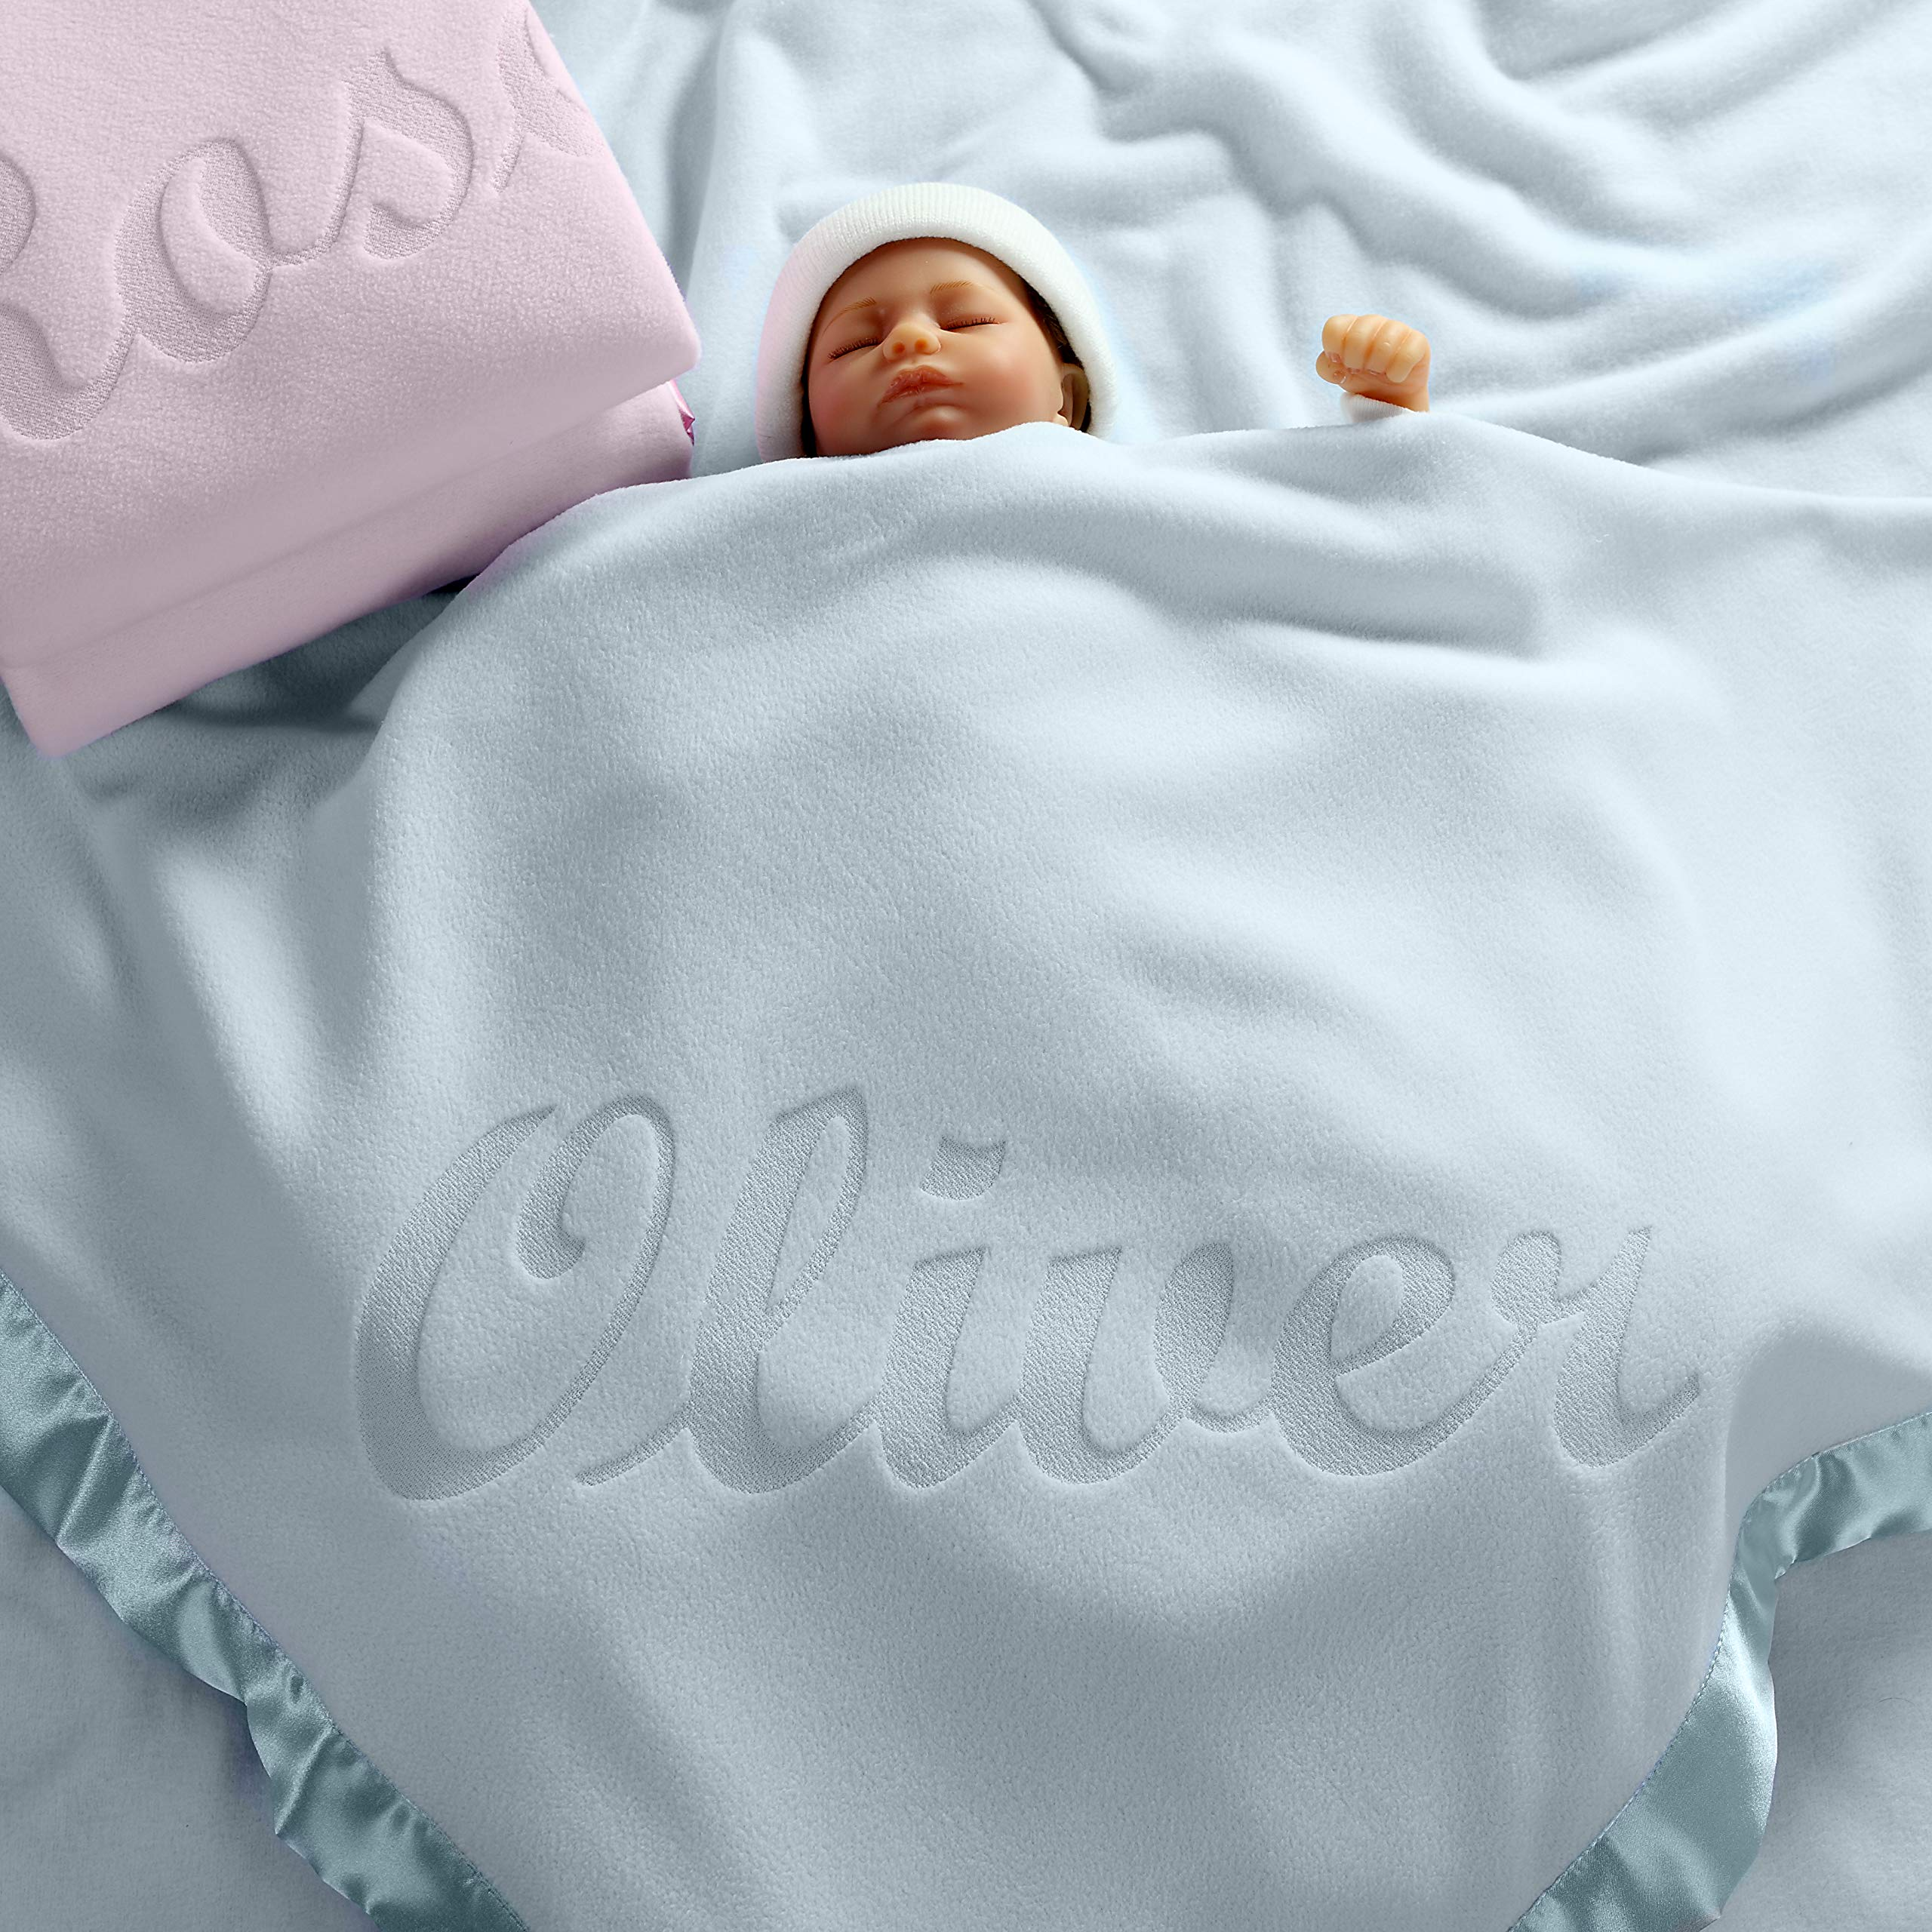 Personalized Baby Blankets (Blue), Large 36x36 Inch, Wide Satin Trim, 200 GSM Fleece by Custom Catch